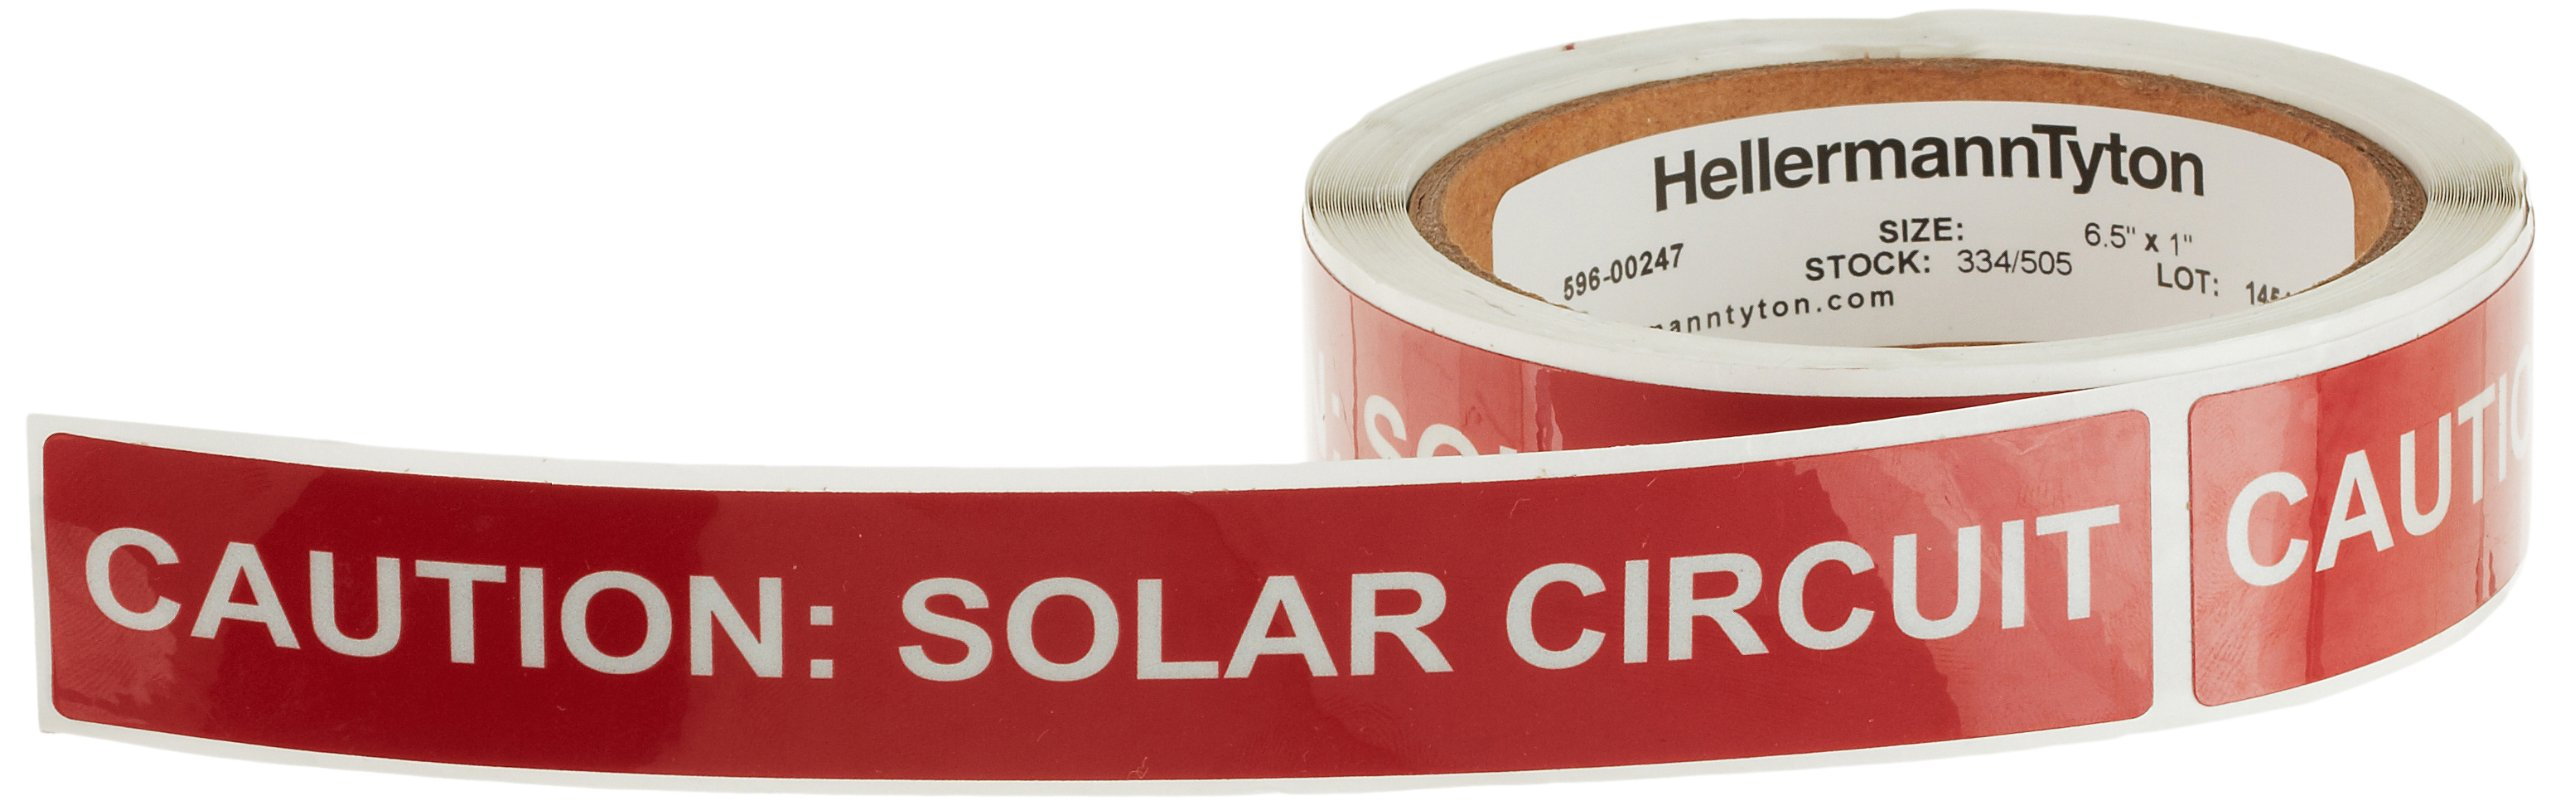 HellermannTyton 596-00247 Pre-Printed Reflective Solar Label, 6.5'' X 1.0'', CAUTION: SOLAR CIRCUIT, Red (Pack of 50)